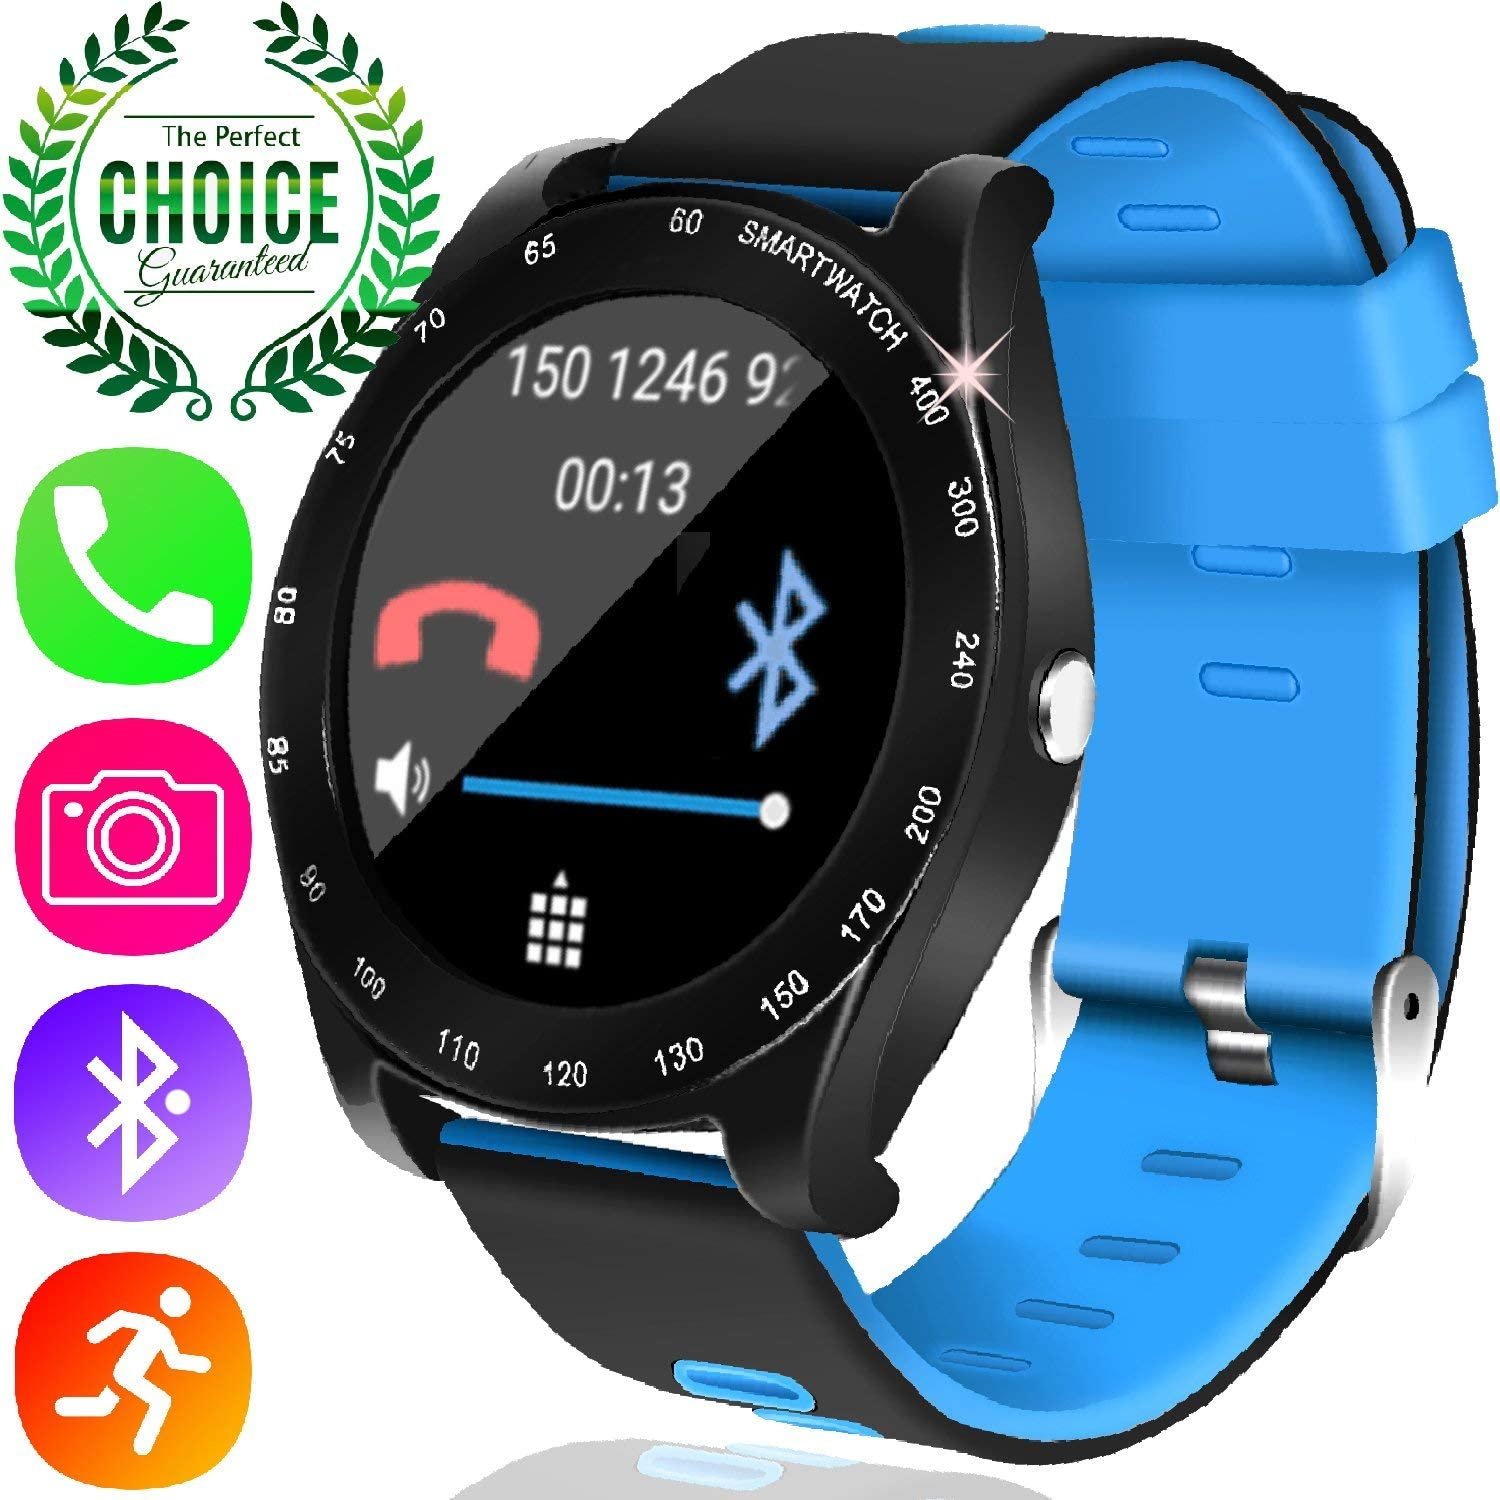 [2020 Launch] Smart Watch Android Phone - Fitness Tracker Smartwatch for Men Women with SIM Card Slot Pedometer Sleep Monitor Timer Camera Music ...